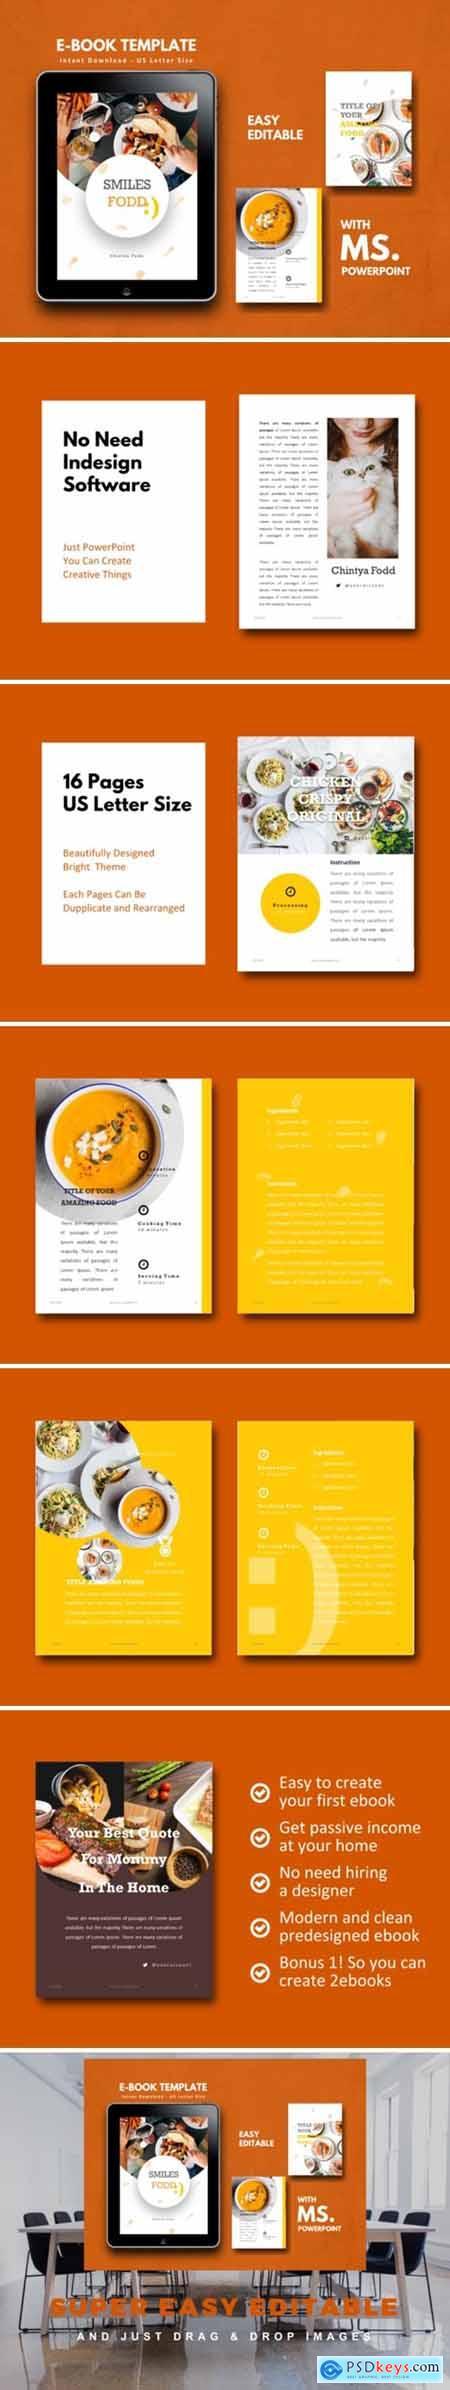 Recipe Book Powerpoint Template 1717377 Free Download